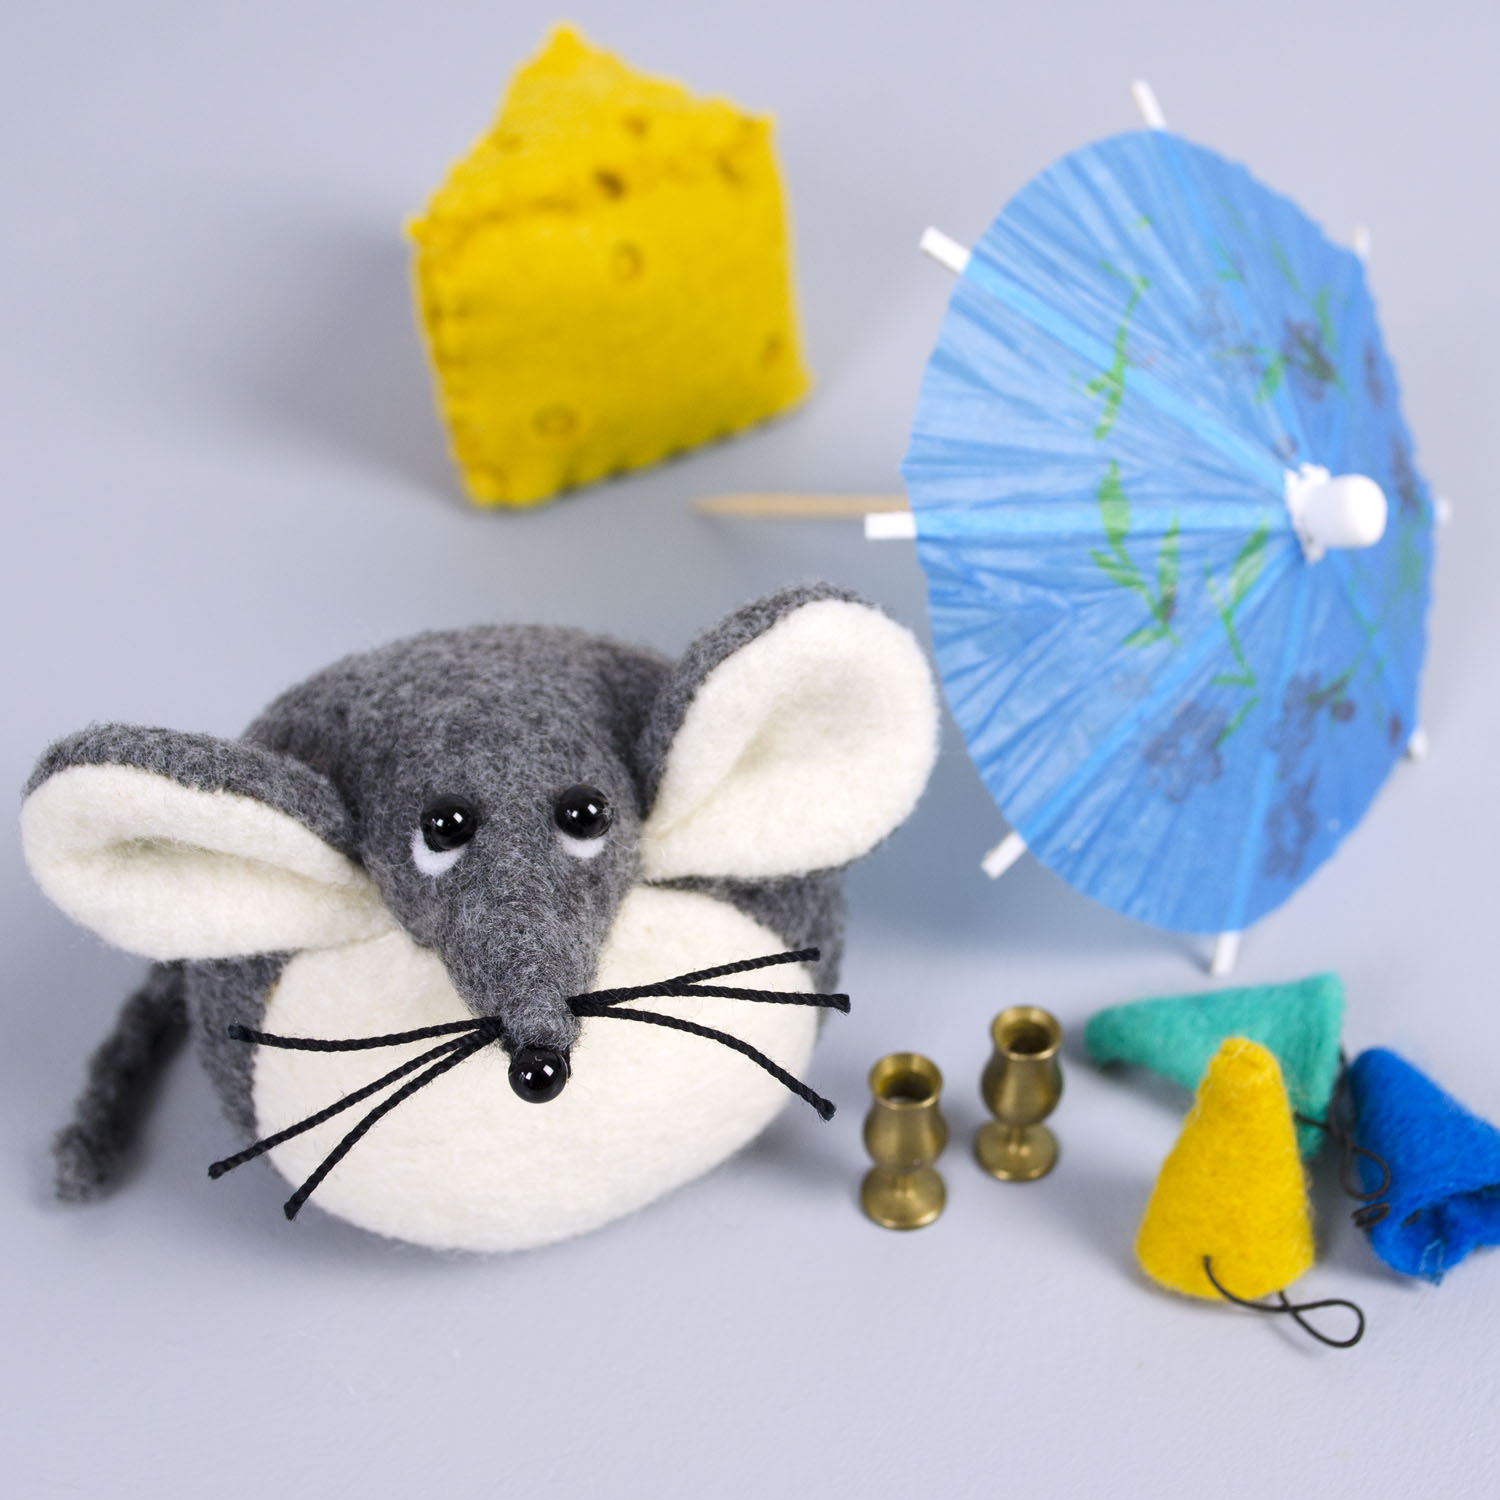 Mika the Mouse paperweight handmade from Kunin eco-fi felt made from plastic bottles | by Bilberry Woods.jpg